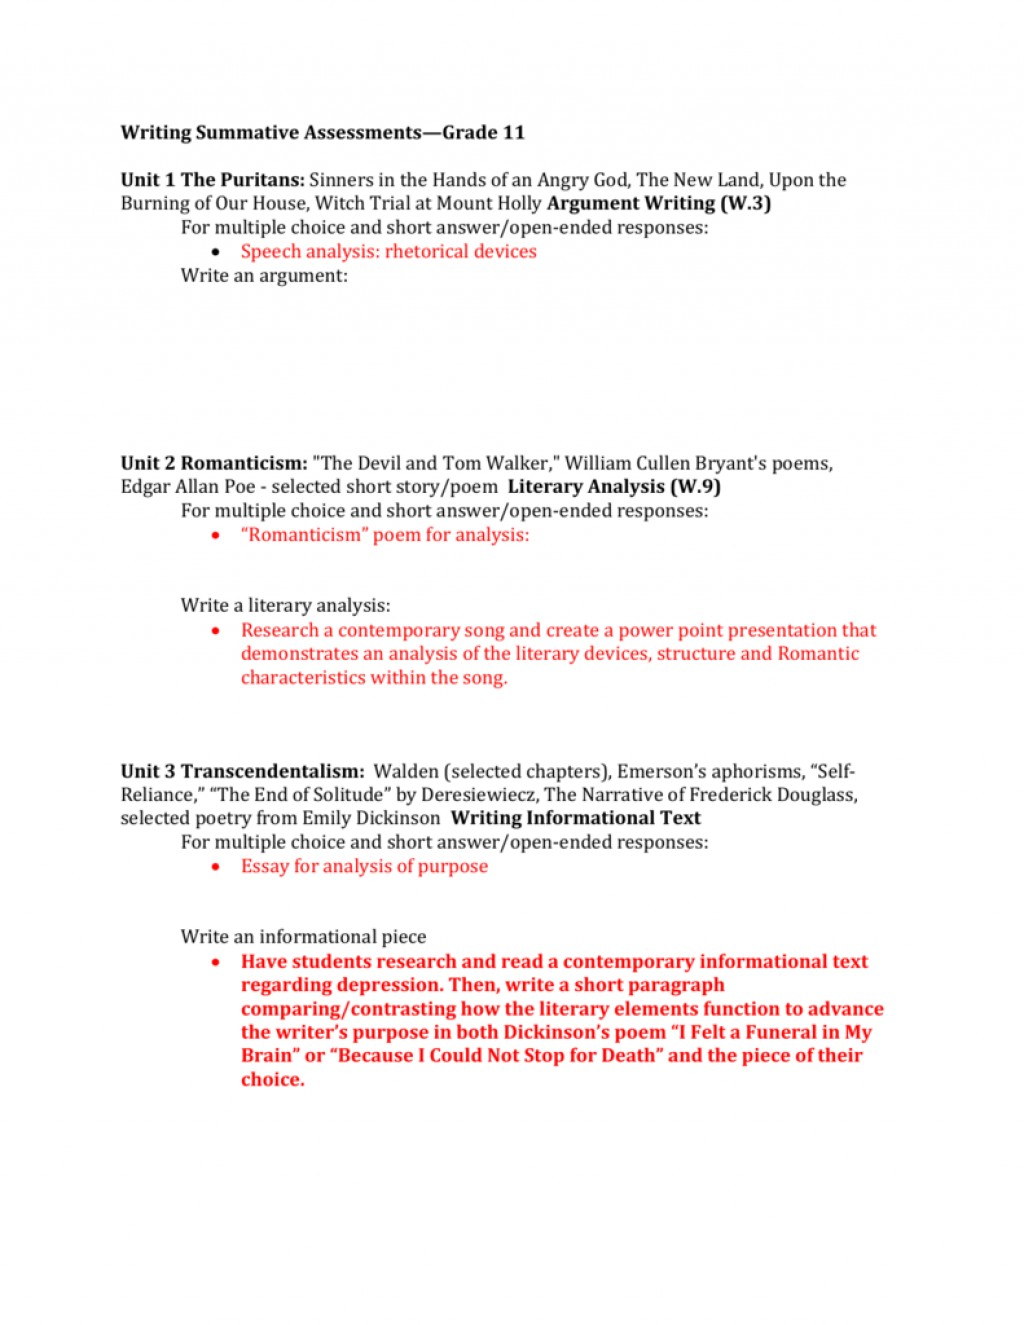 005 Essay On Because I Could Not Stop For Death Example 009038928 1 Top Conclusion Analytical Sample Large